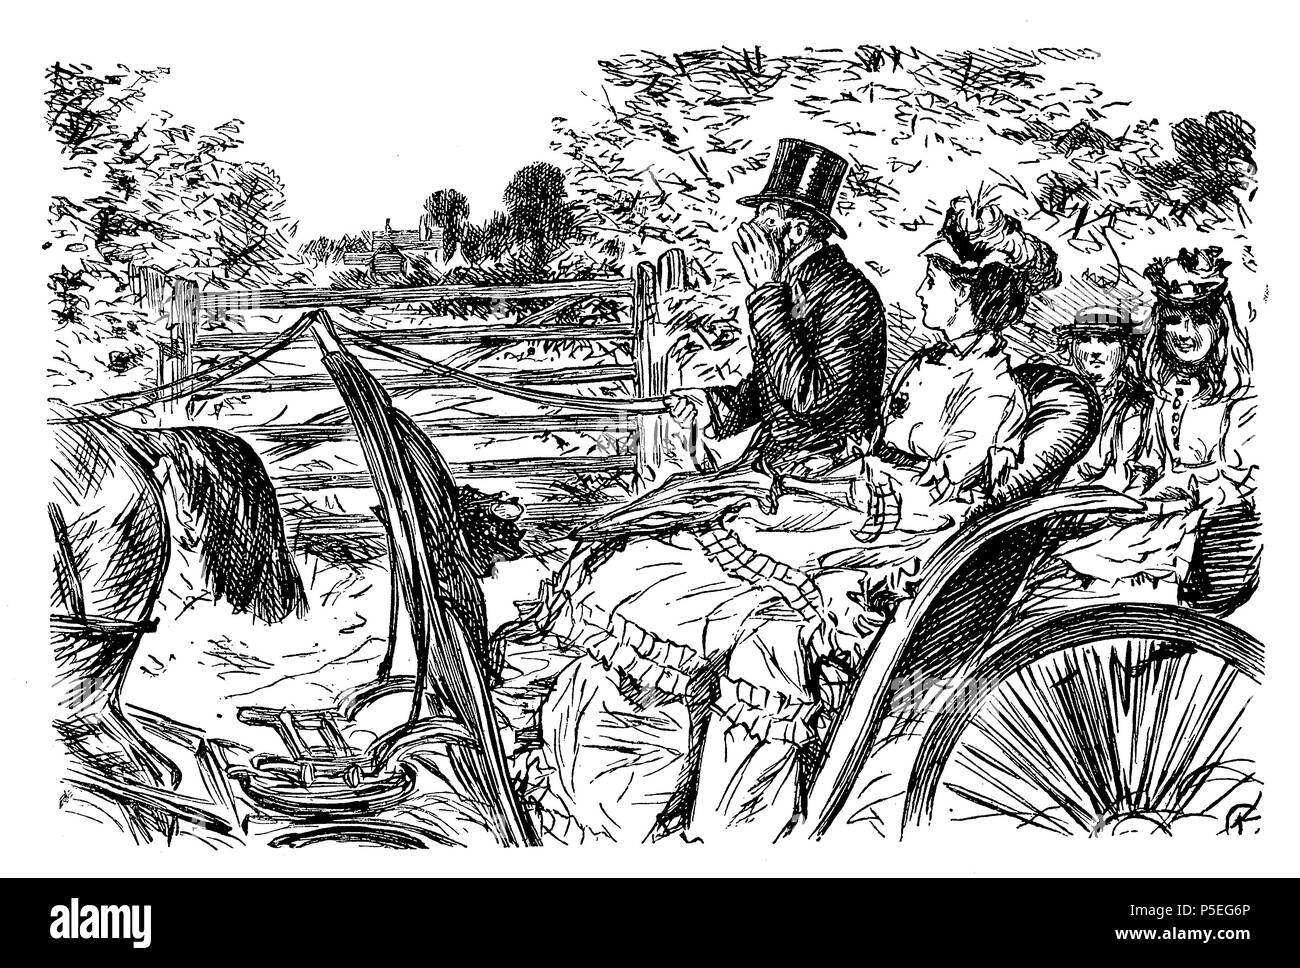 The considerate coachman, caricature and humor by Charles Keene (1823 – 1891)  for Punch 1872 - Stock Image